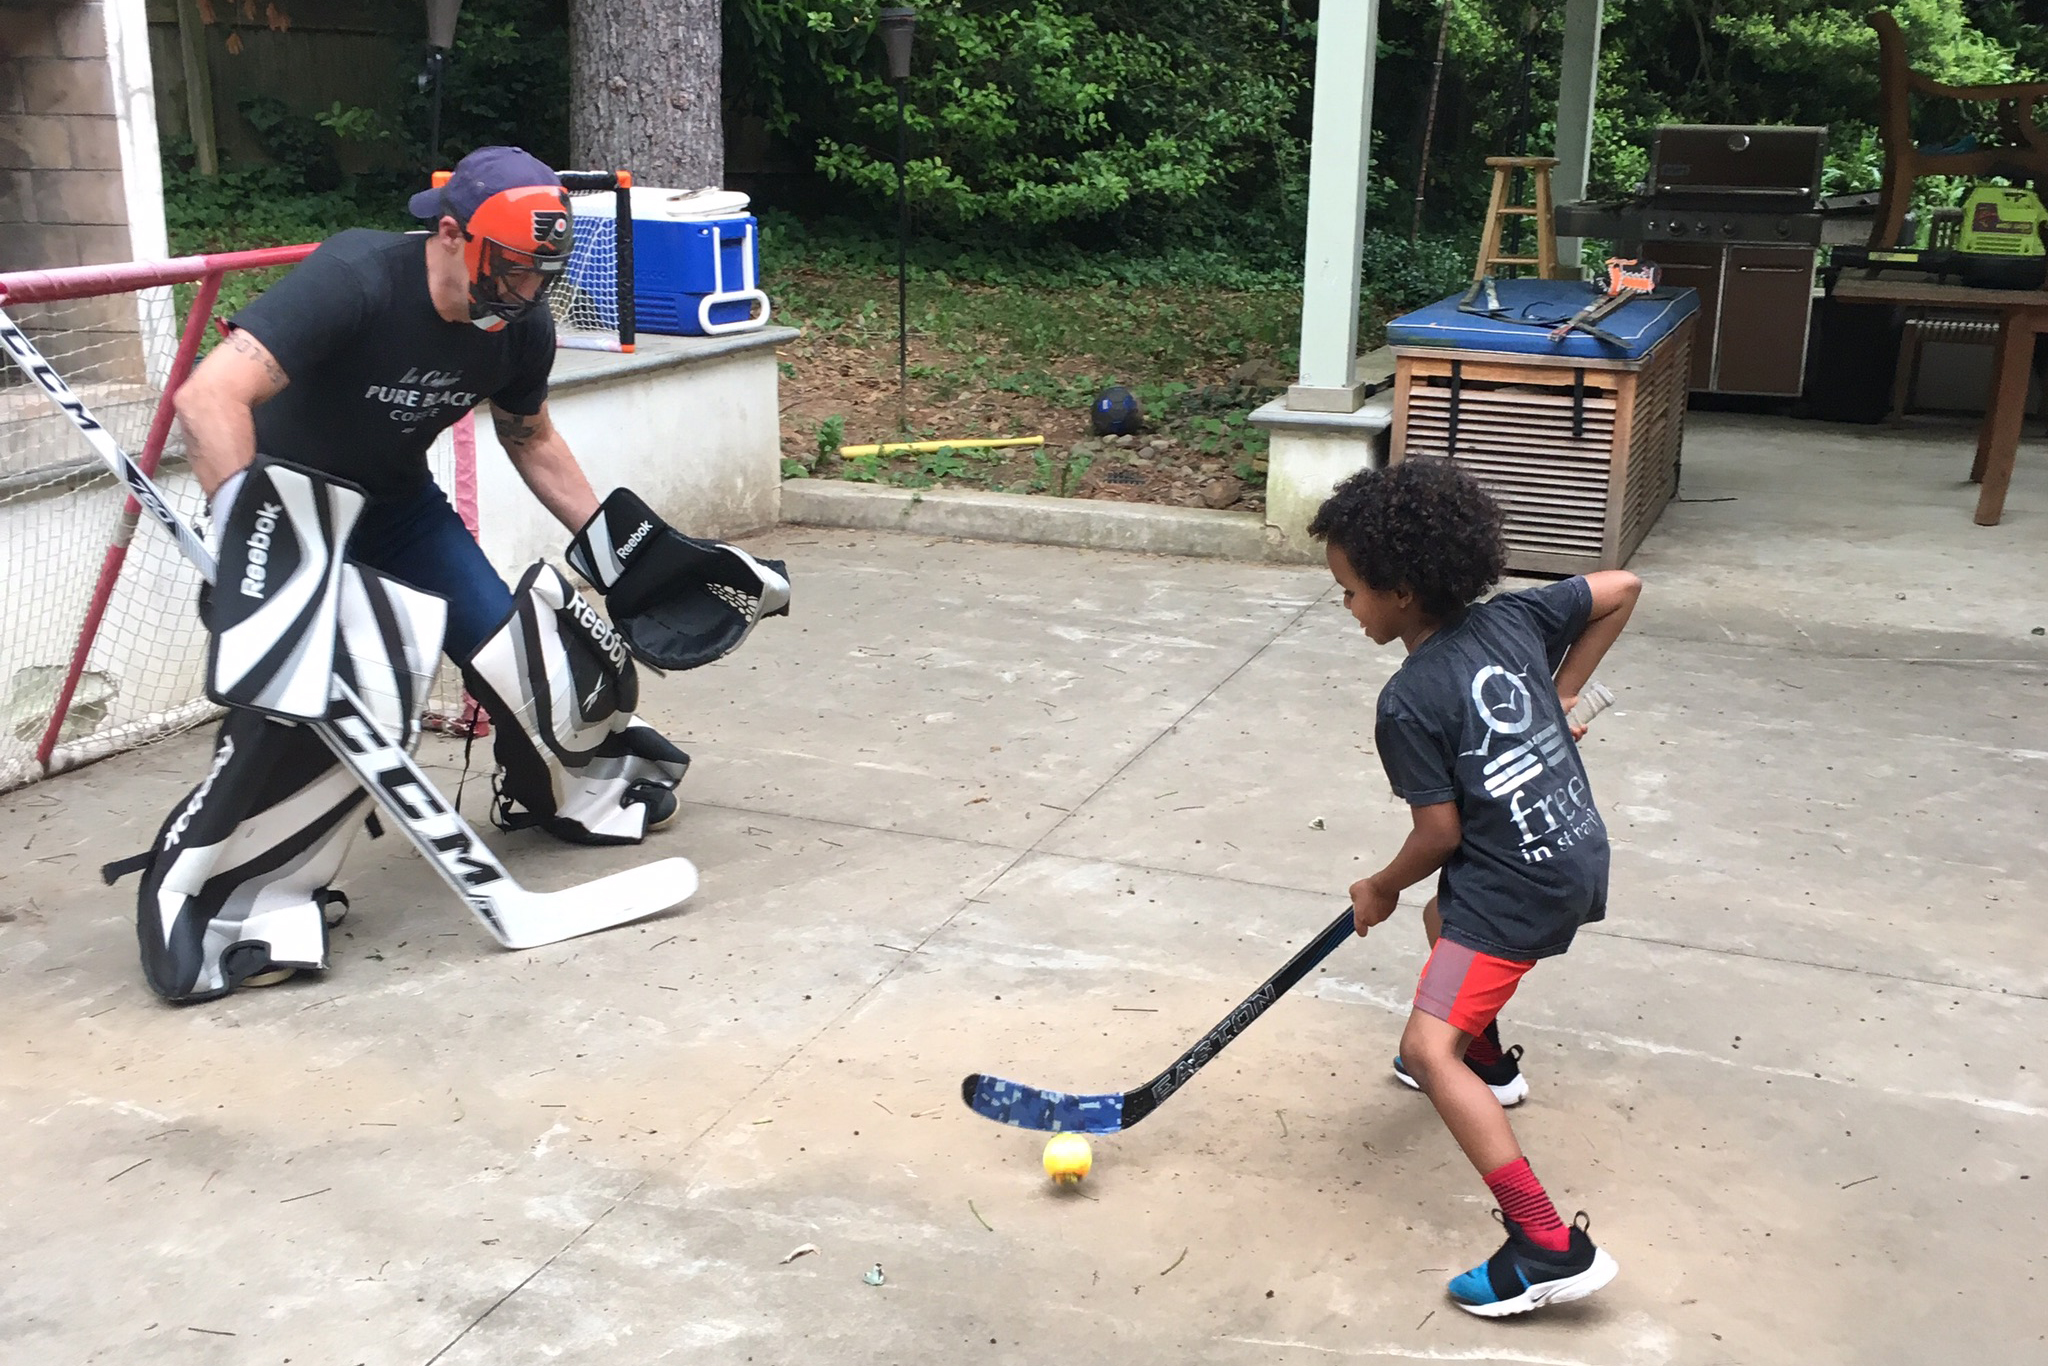 Todd Carmichael playing street hockey with his son, Ben